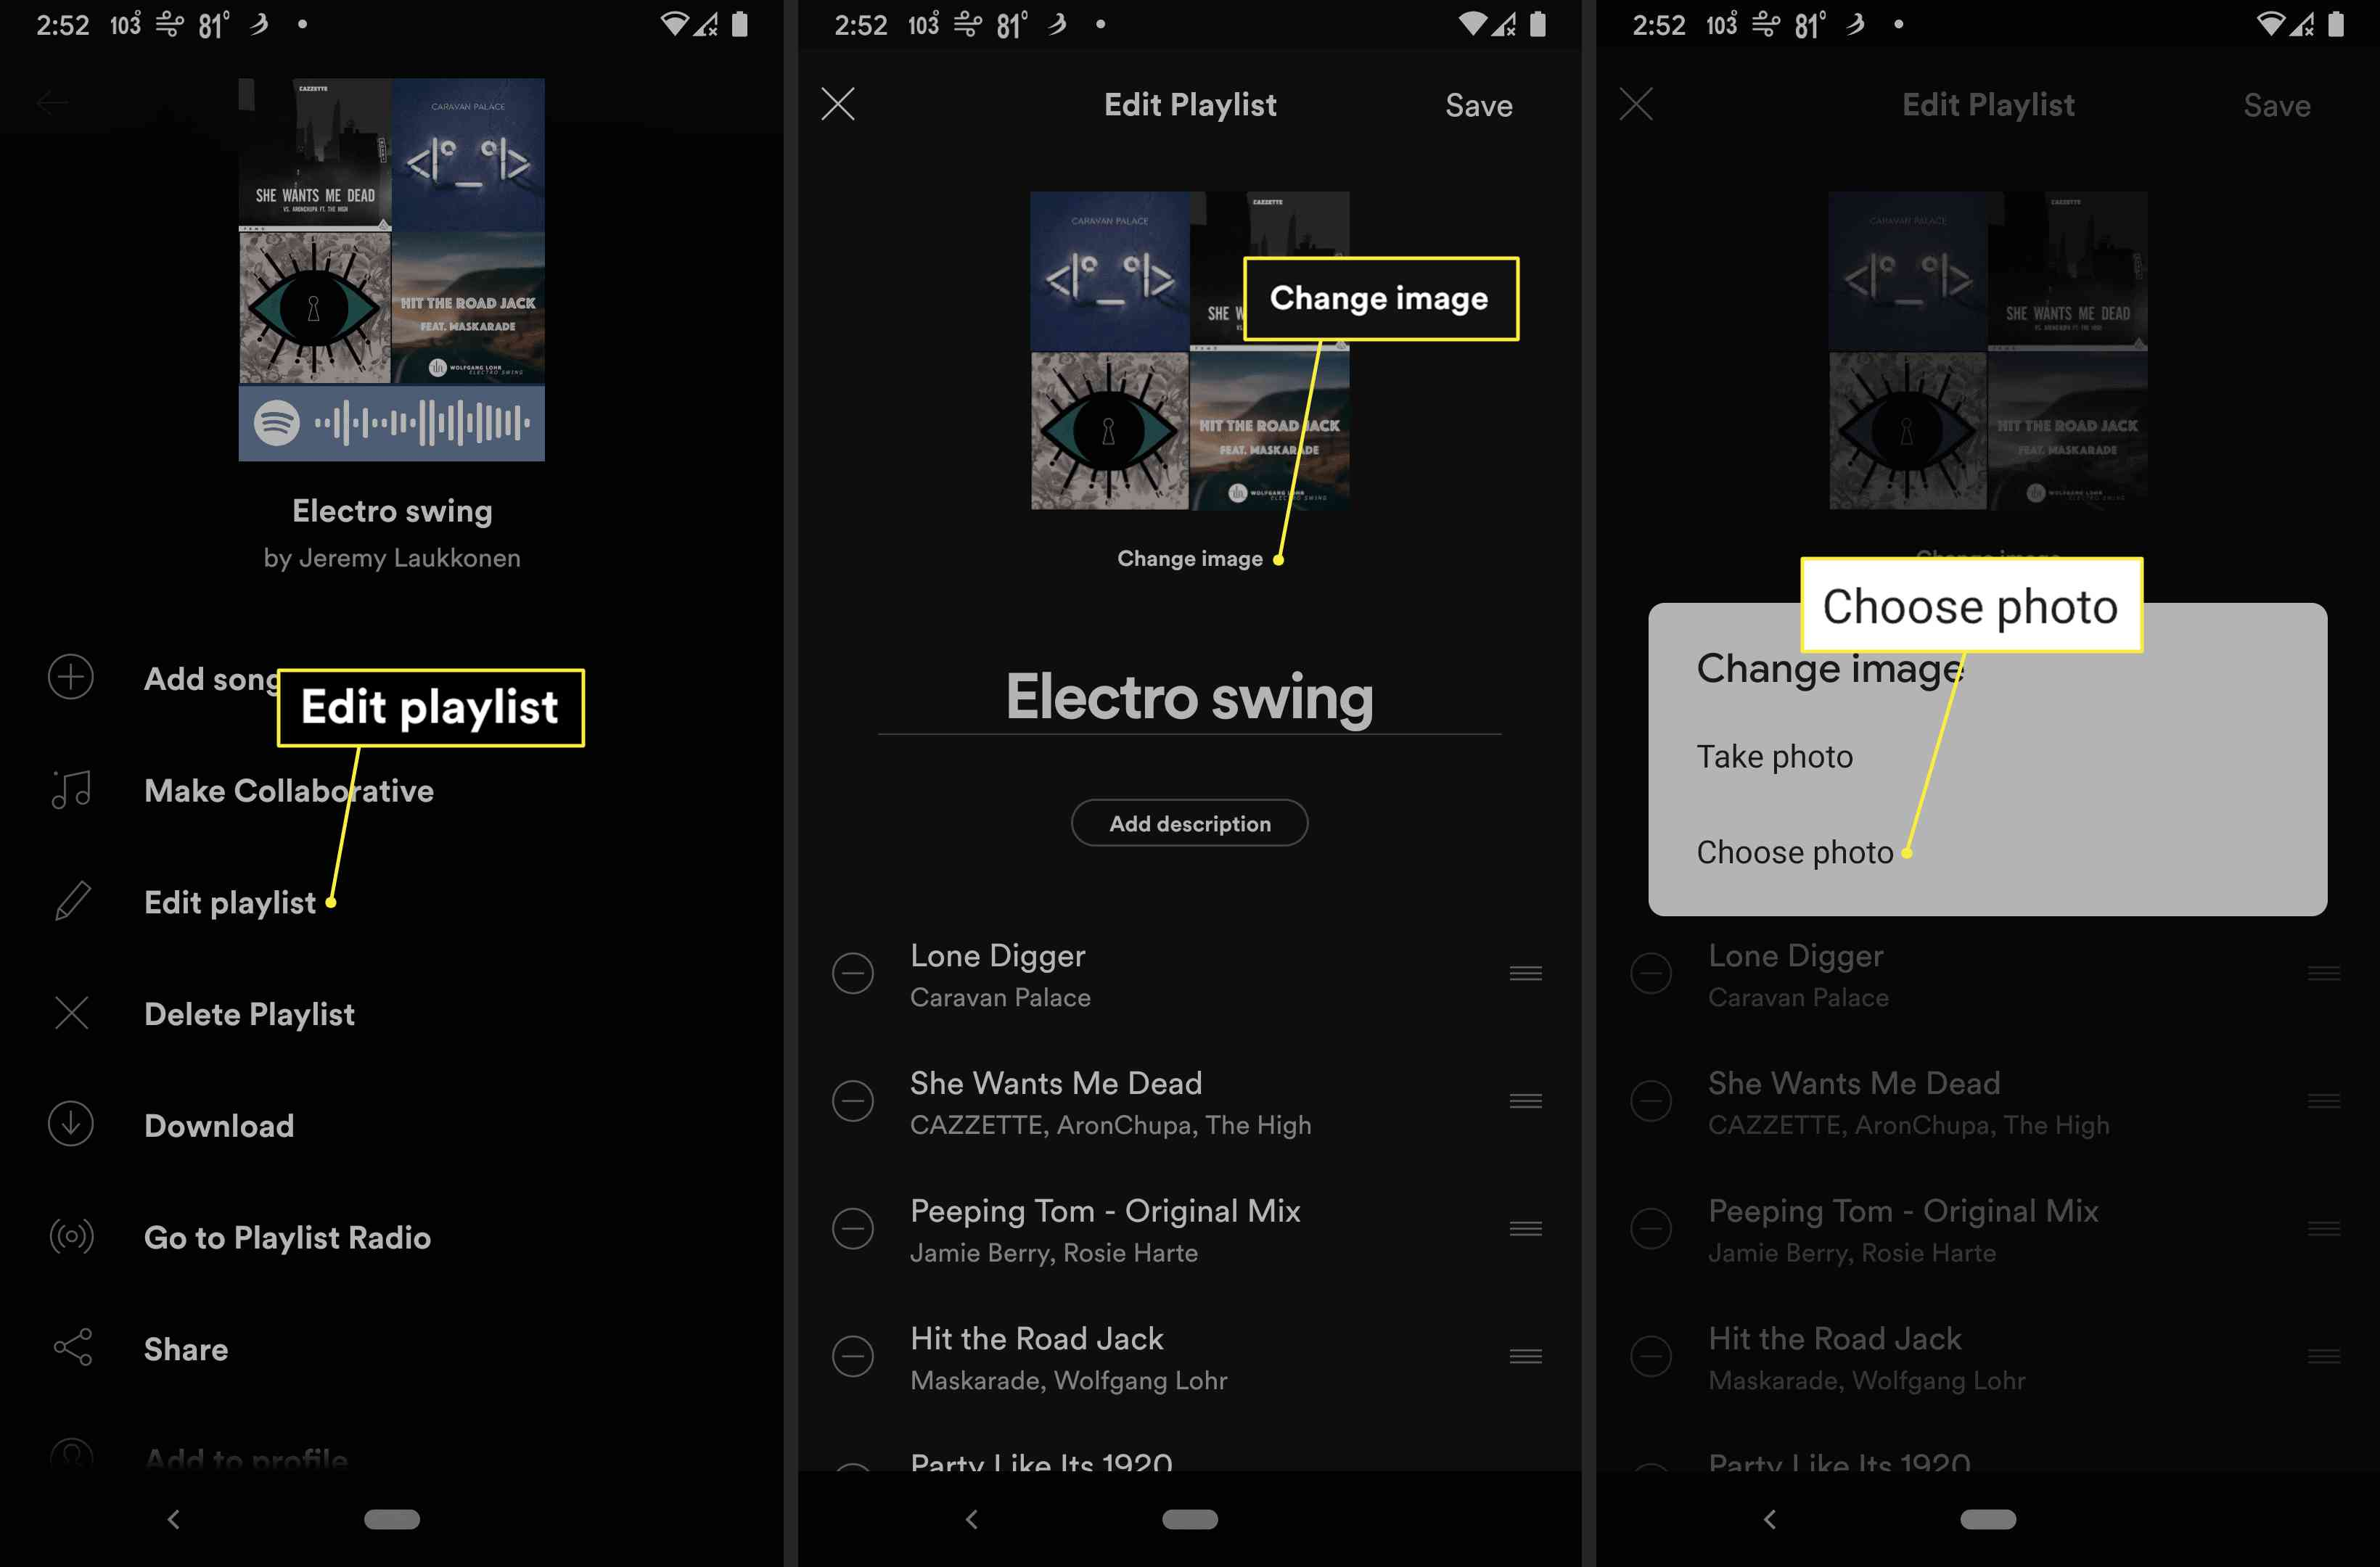 Edit Playlist, Change Image, and Choose Photo highlighted in Spotify app